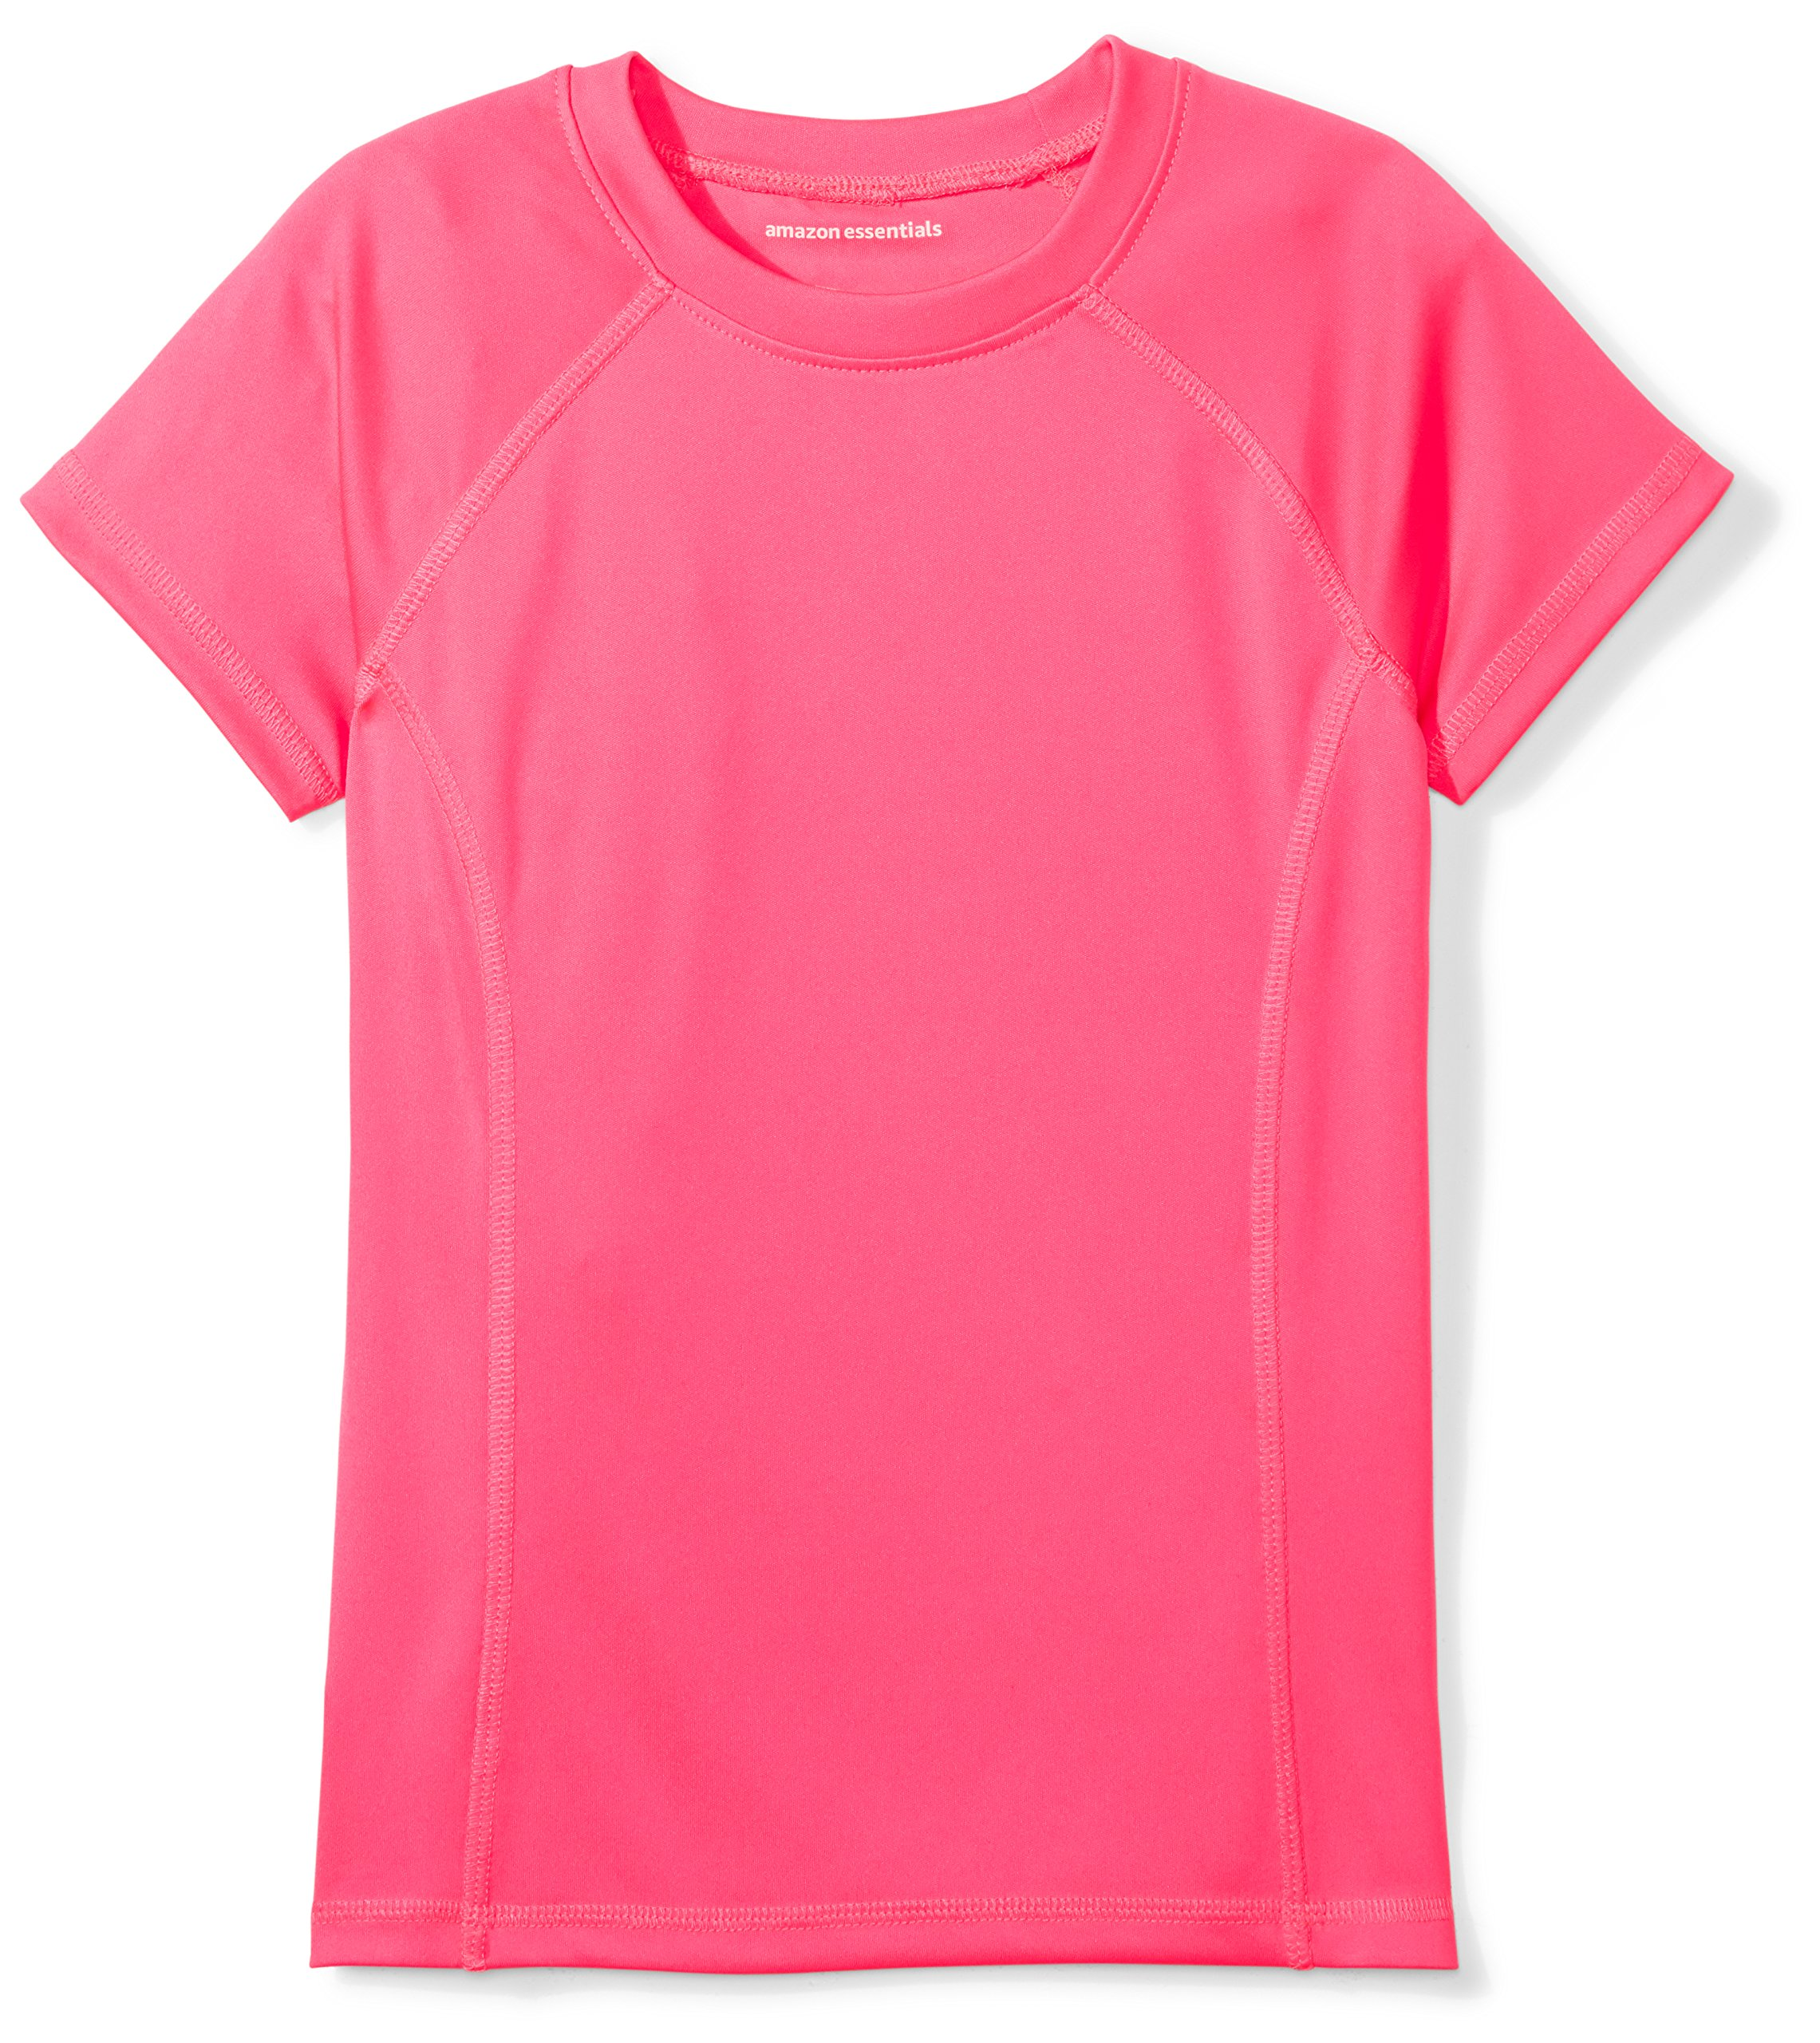 Amazon Essentials Girls' Swim Tee, Bright Pink, L (10)